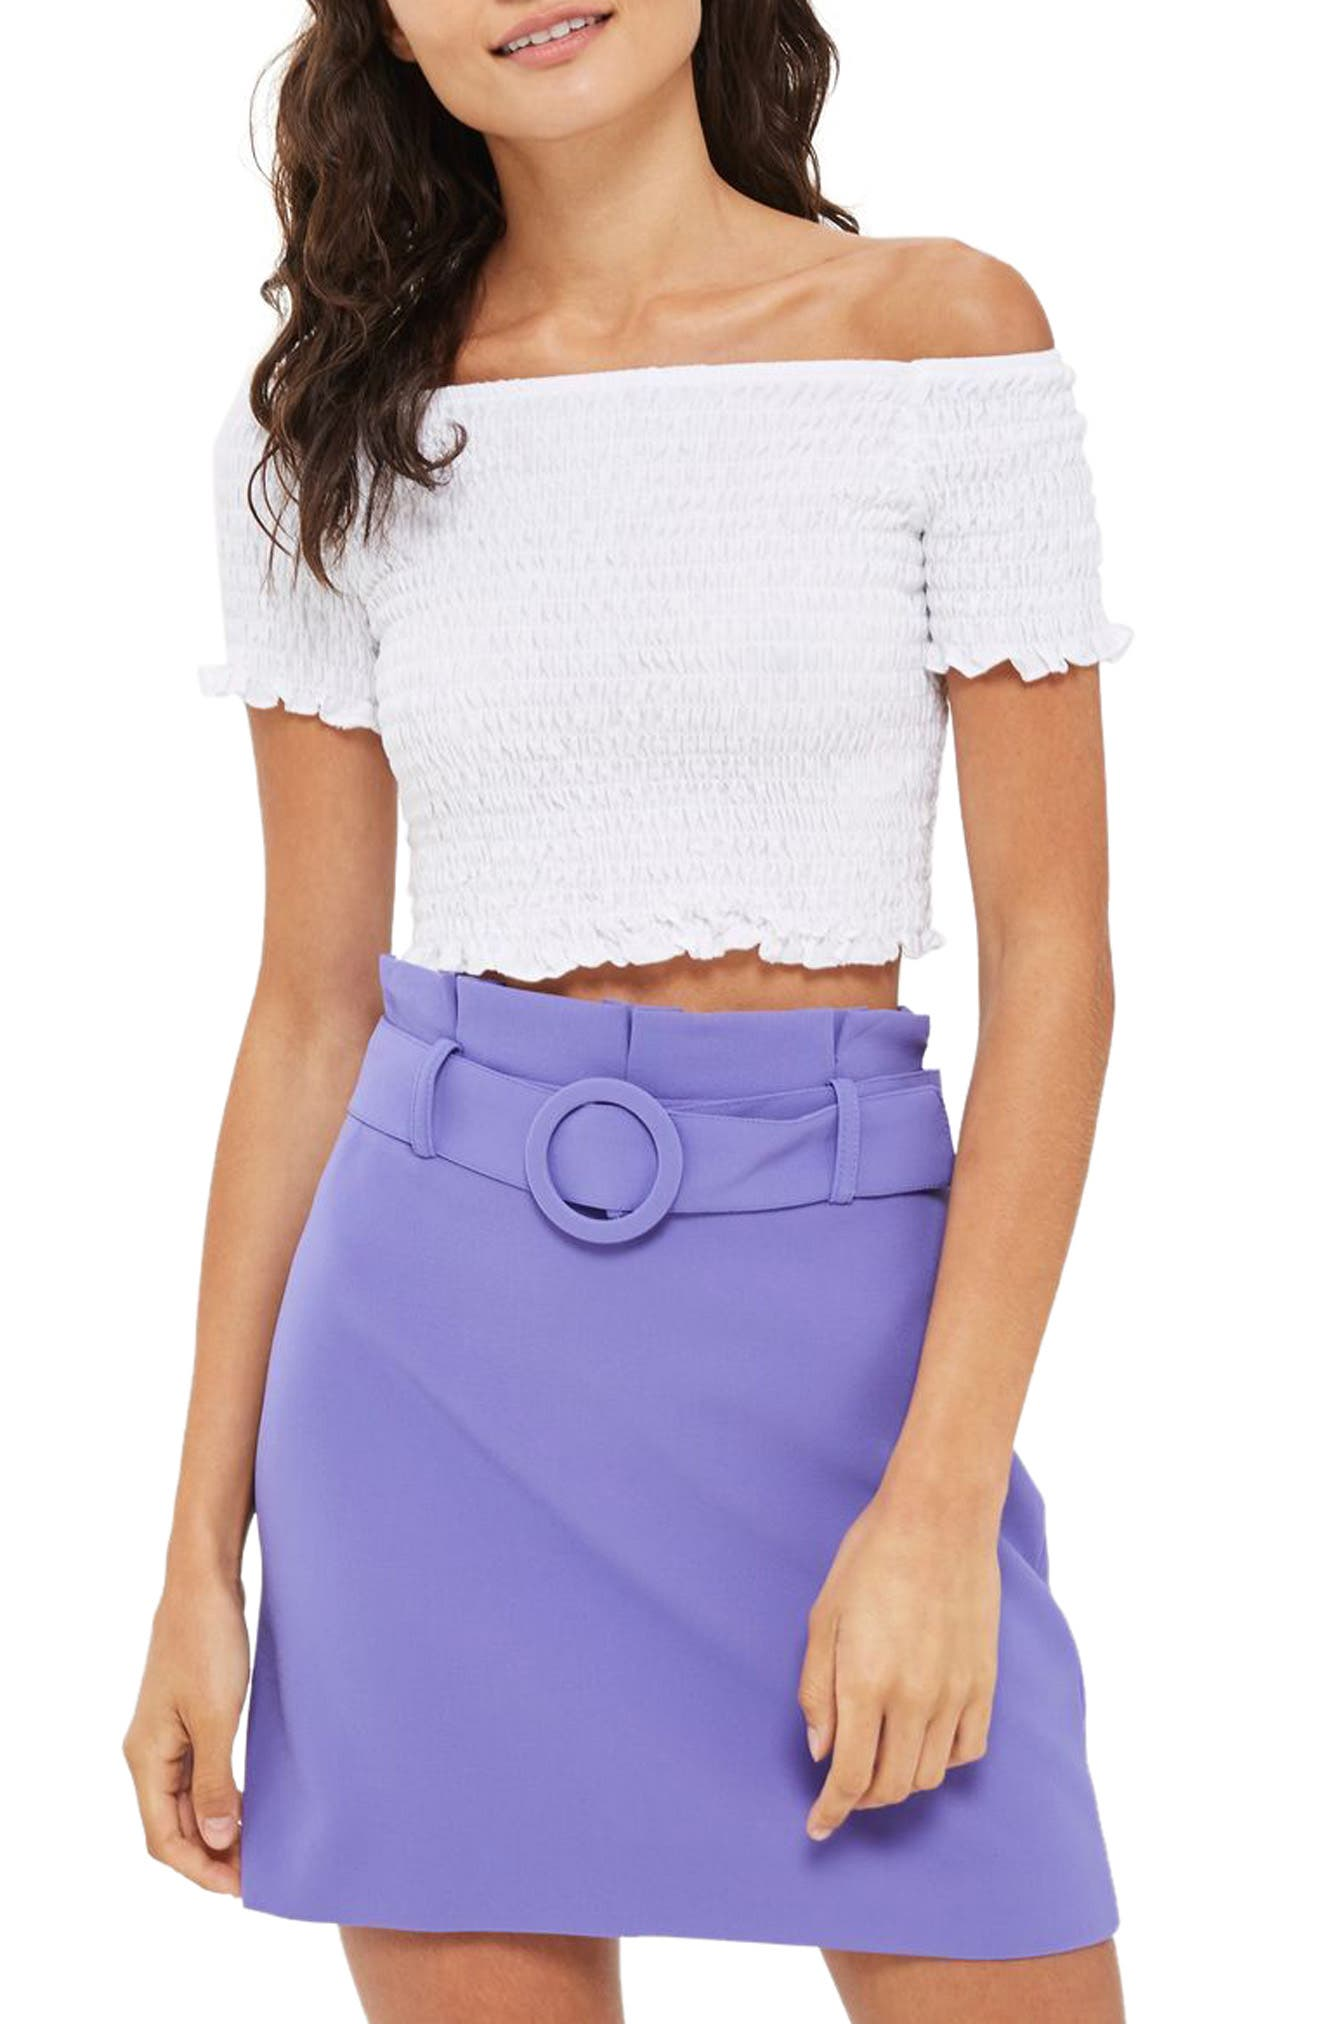 Topshop Smocked Off the Shoulder Crop Top